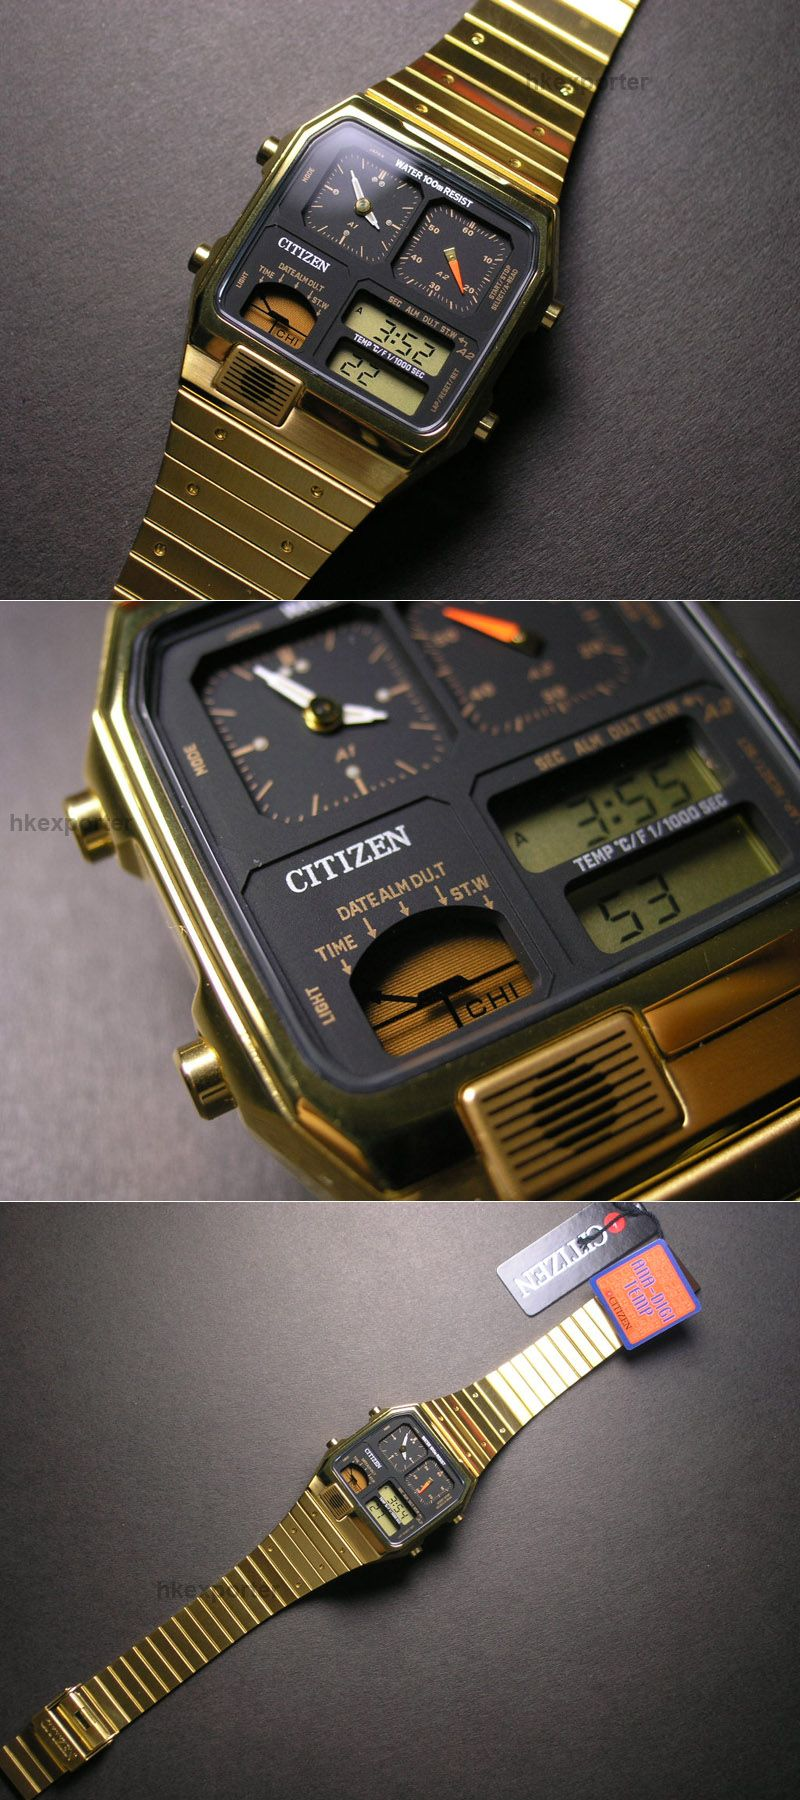 CITIZEN ANA-DIGI TEMP VINTAGE WATCH JG2032-52E [JG2032-52E] : GOLDEN8TS #vintagewatches